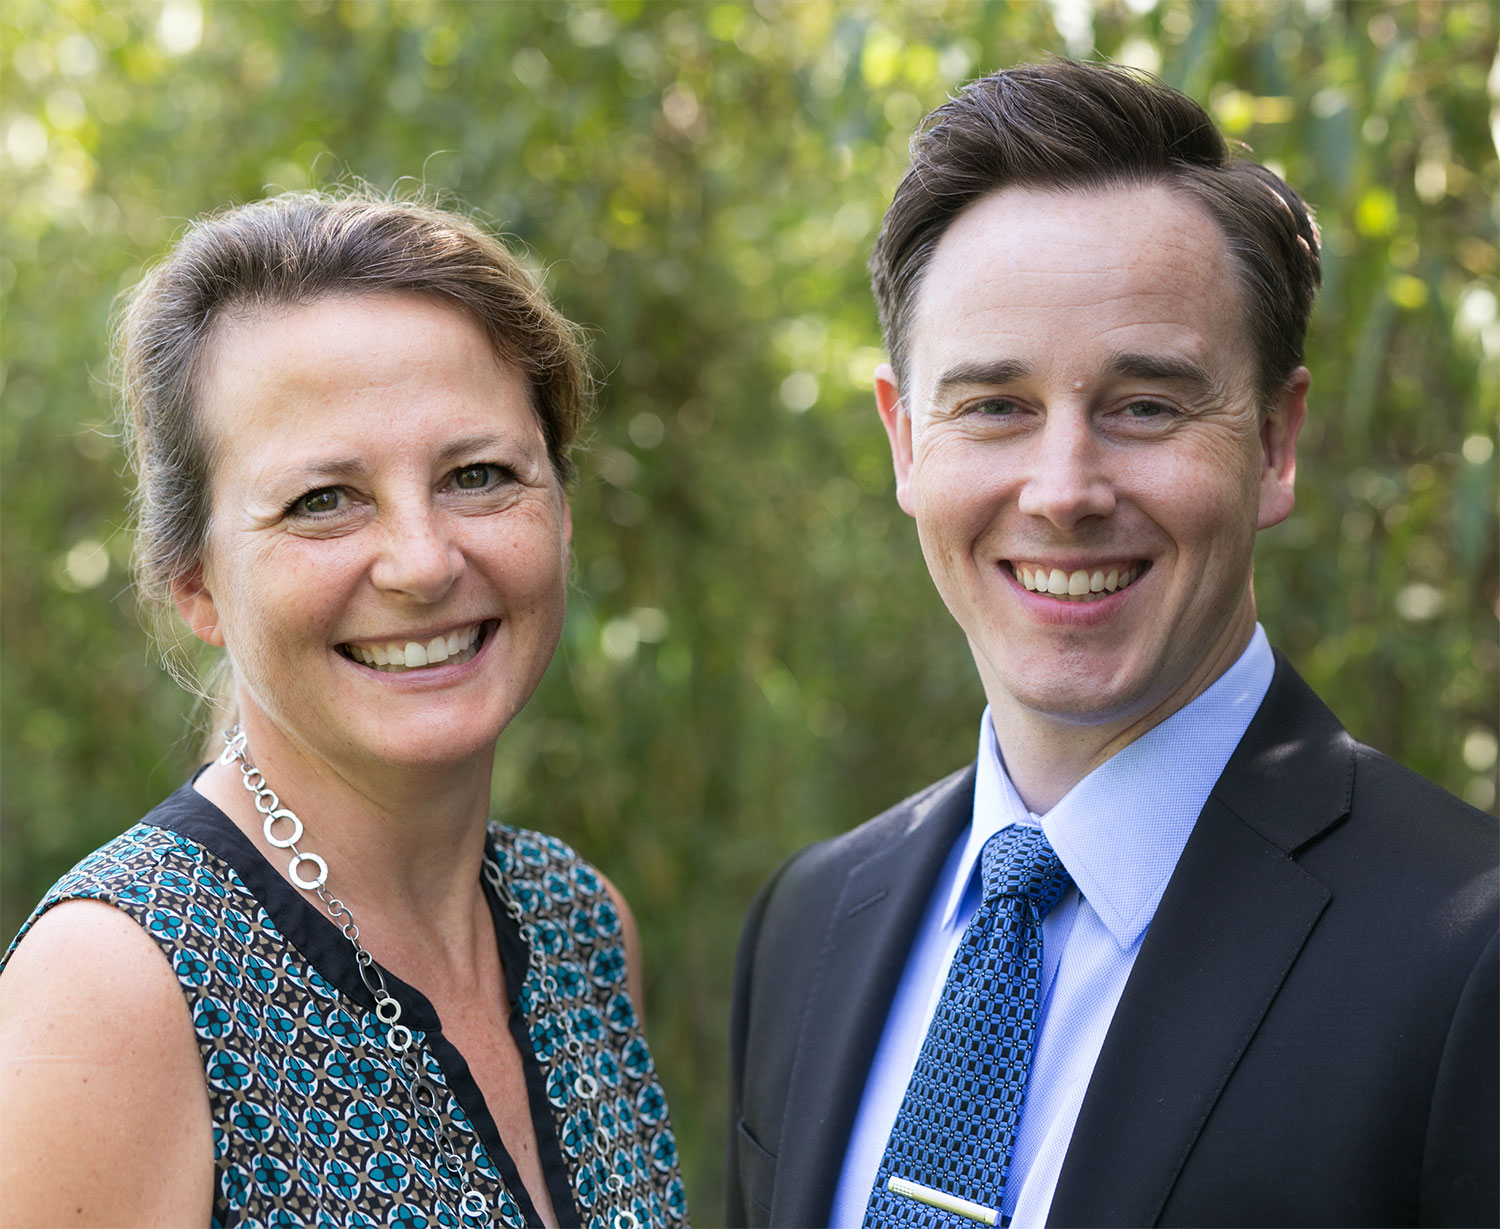 Photo of Dr. Woloshyn and Dr. Nordberg